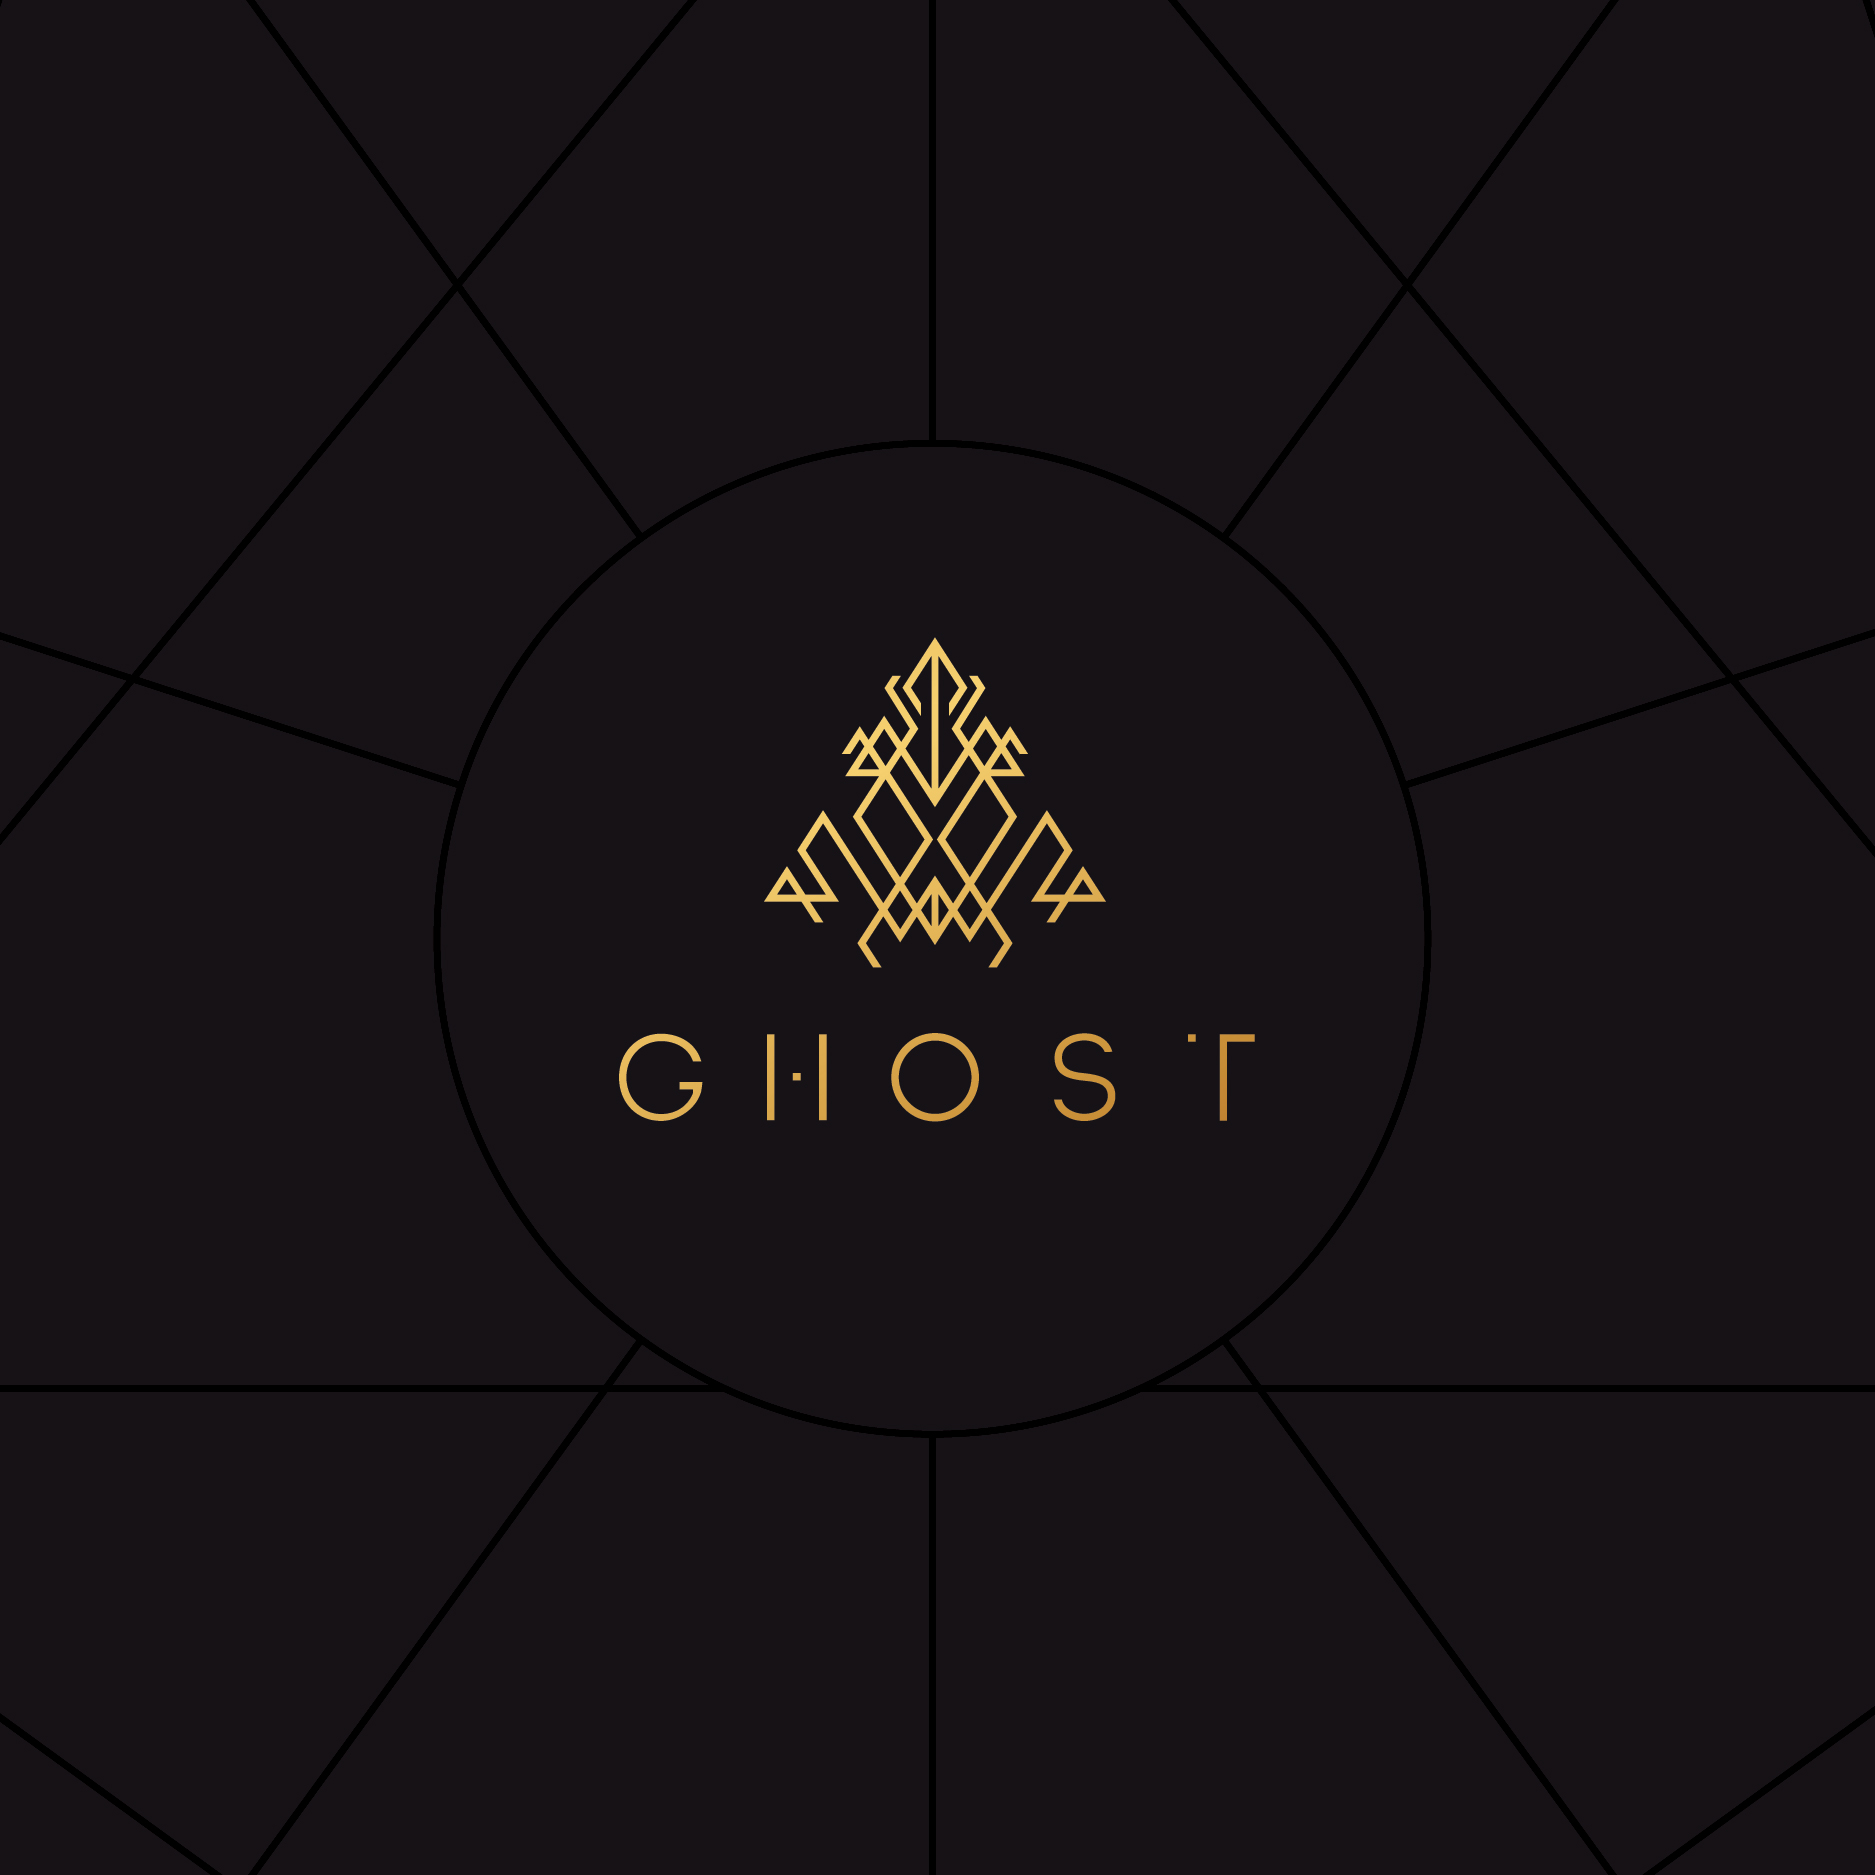 GHOST - Hey that's us! We needed strong branding too. What else would you expect?